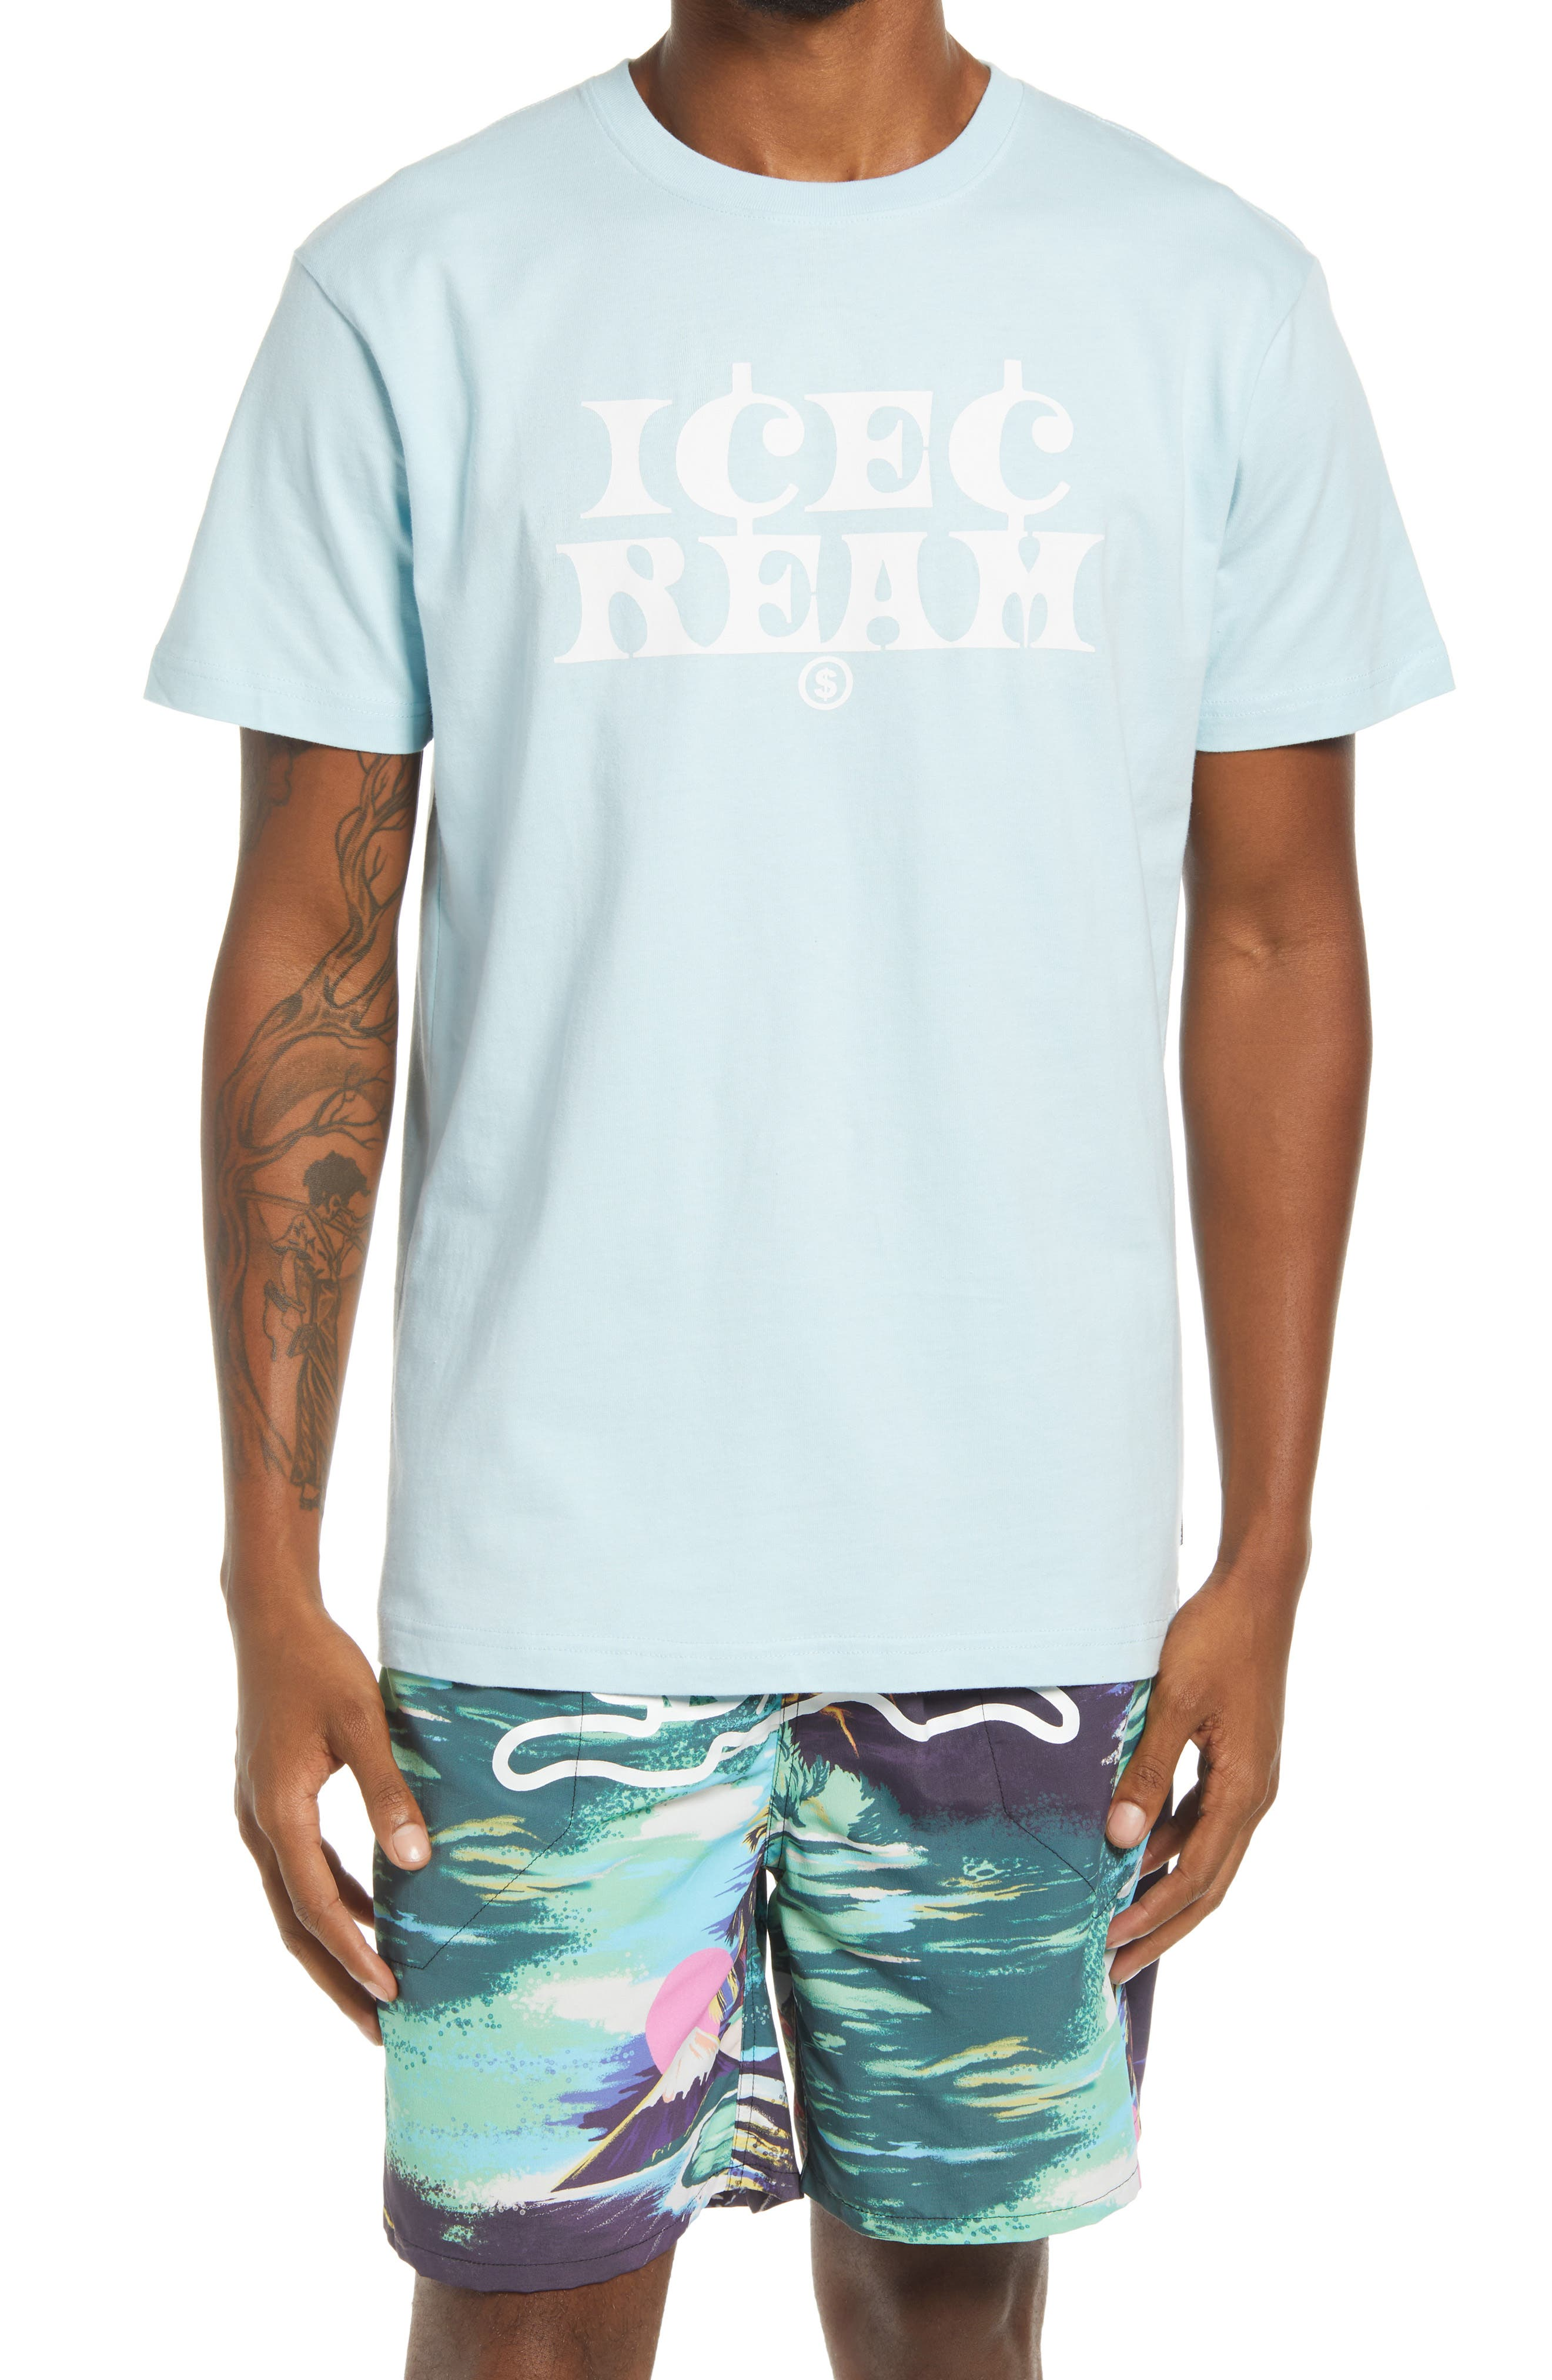 Cents Graphic Tee